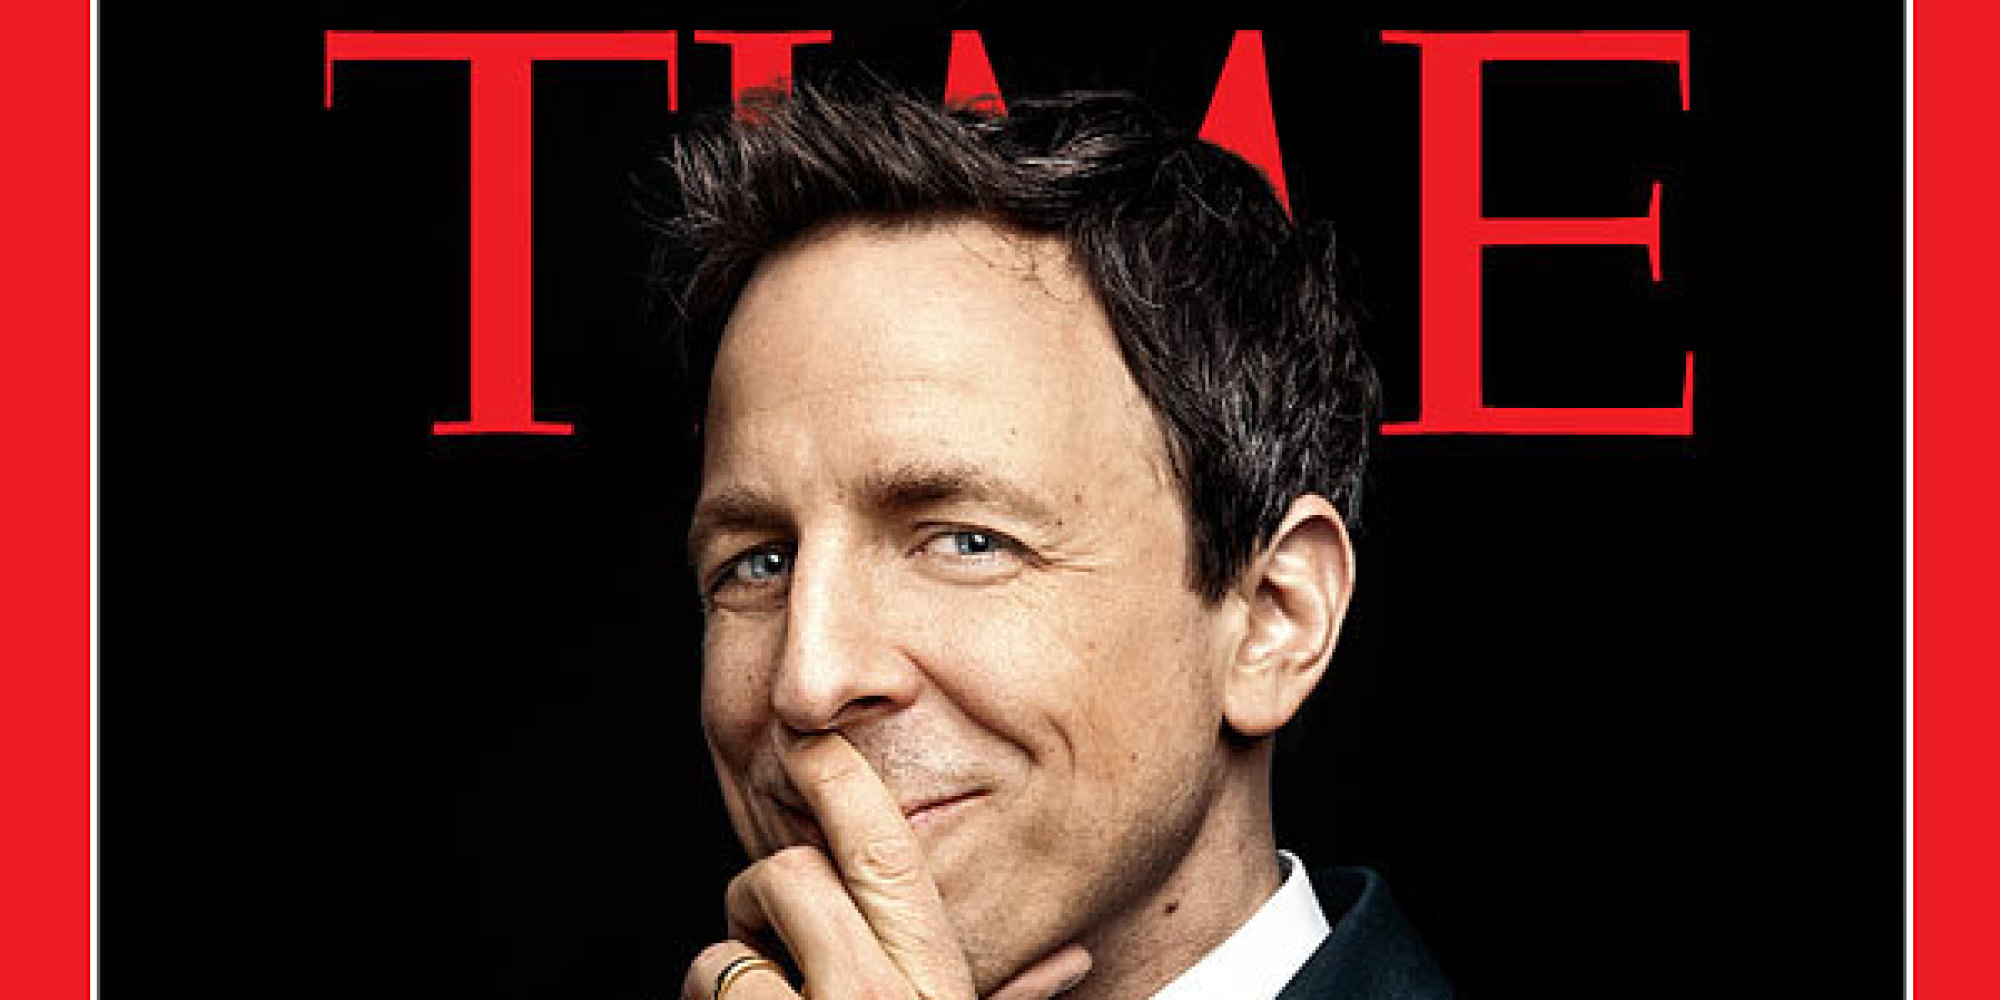 seth meyers graces time magazine 39 s first cover of 2014 talks future of 39 late night 39. Black Bedroom Furniture Sets. Home Design Ideas